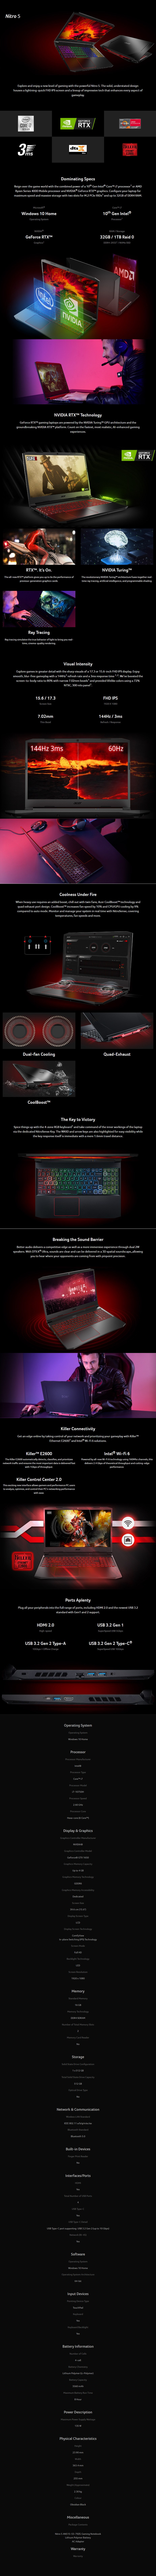 """Acer Nitro 5 Gaming 15.6"""" Laptop i7-10750H 16GB 512GB GTX 1650 W10H - Overview 1"""